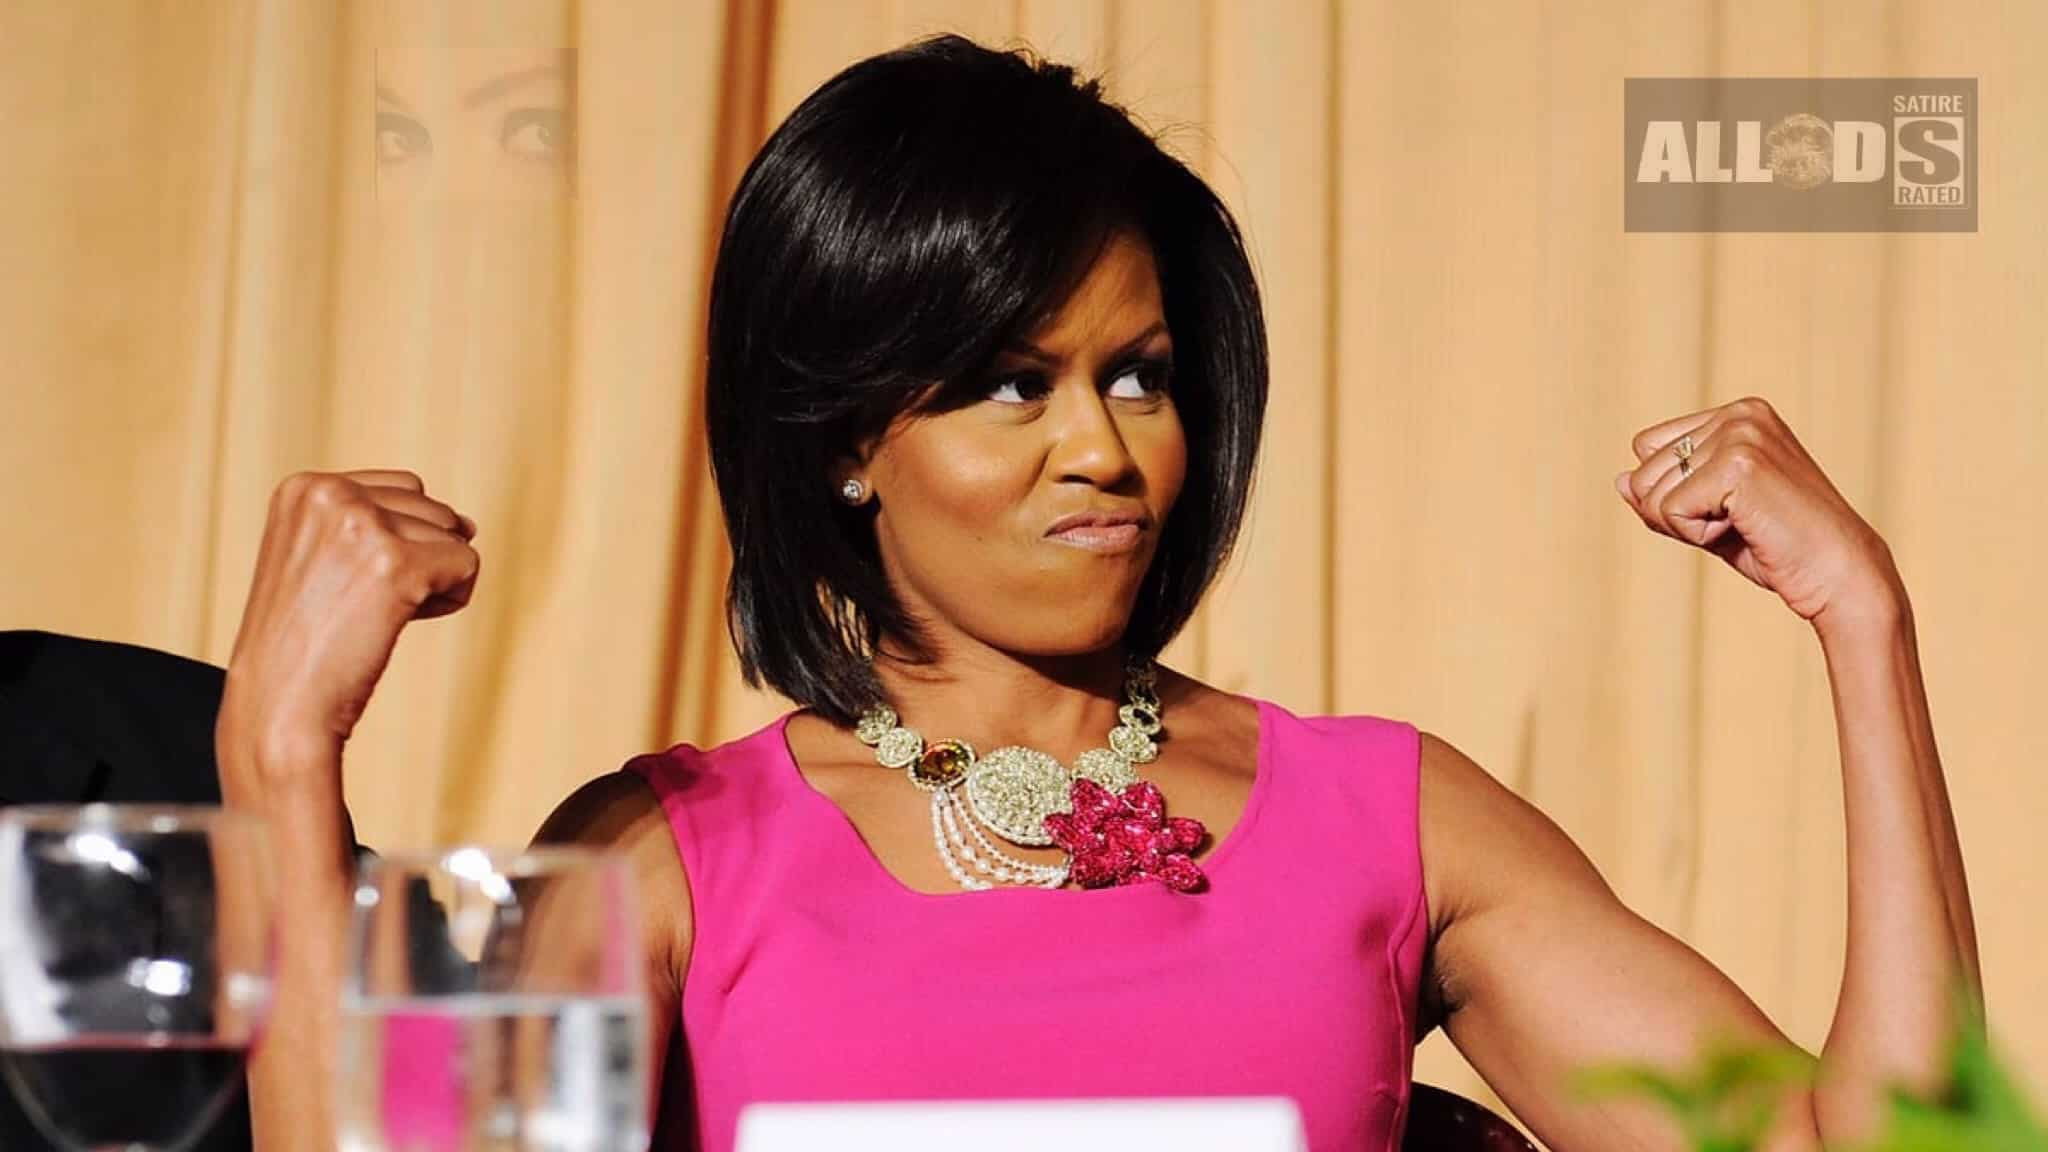 Michelle Slams Melania:'She's A Terrible Role Model For America's Women'